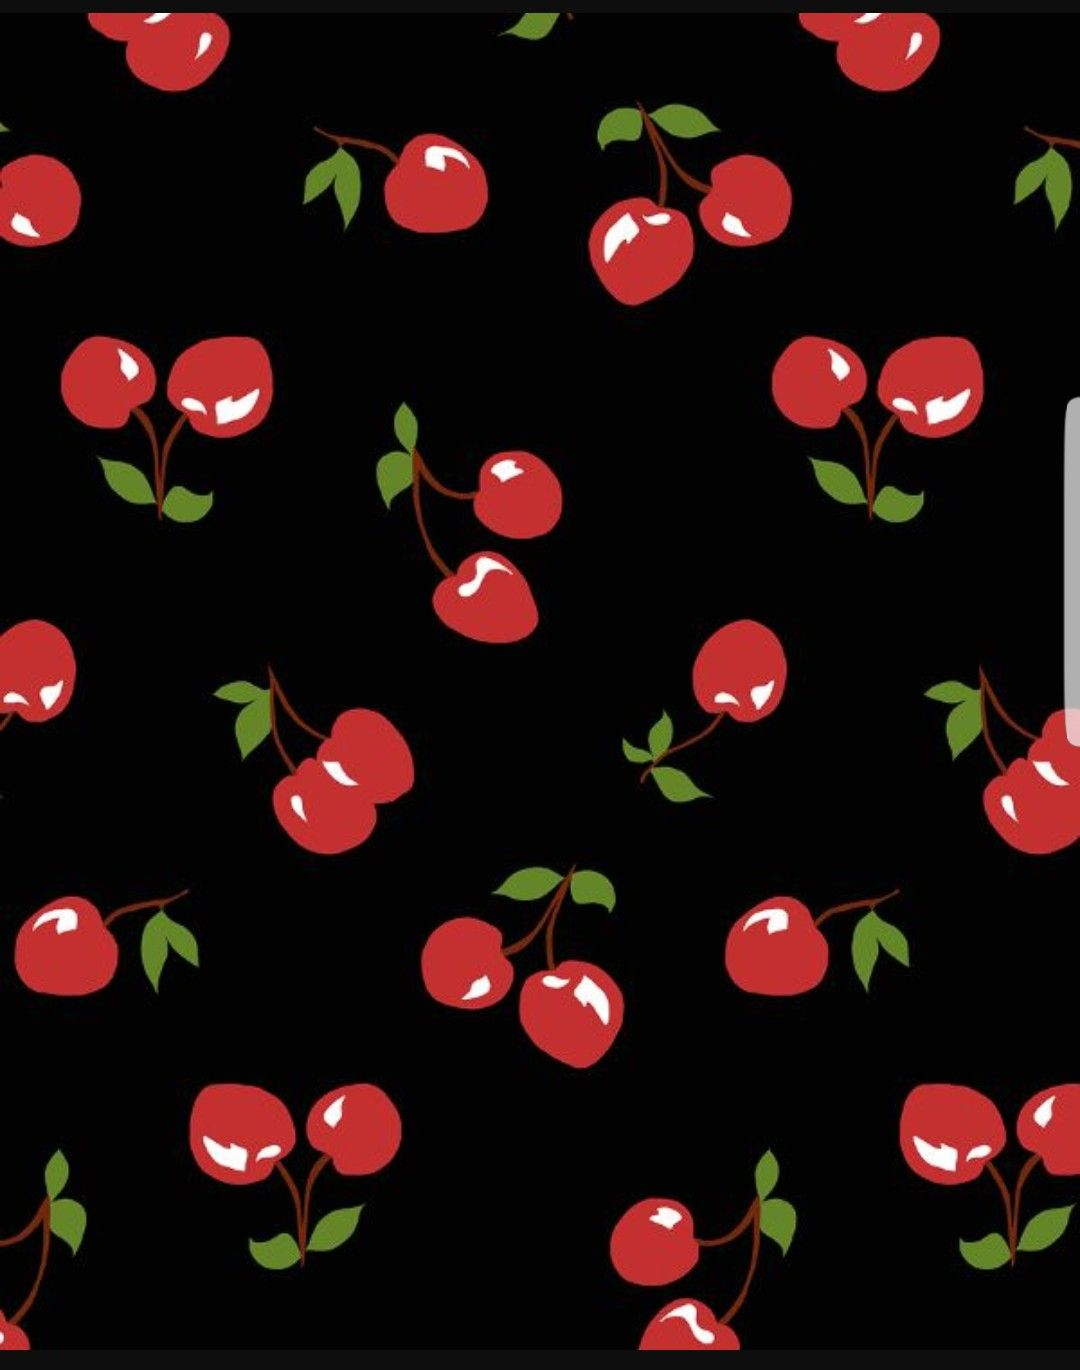 Pin By Eric And Carrie Carden On Cherries Desktop Wallpaper Pattern Pattern Wallpaper Iphone Wallpaper